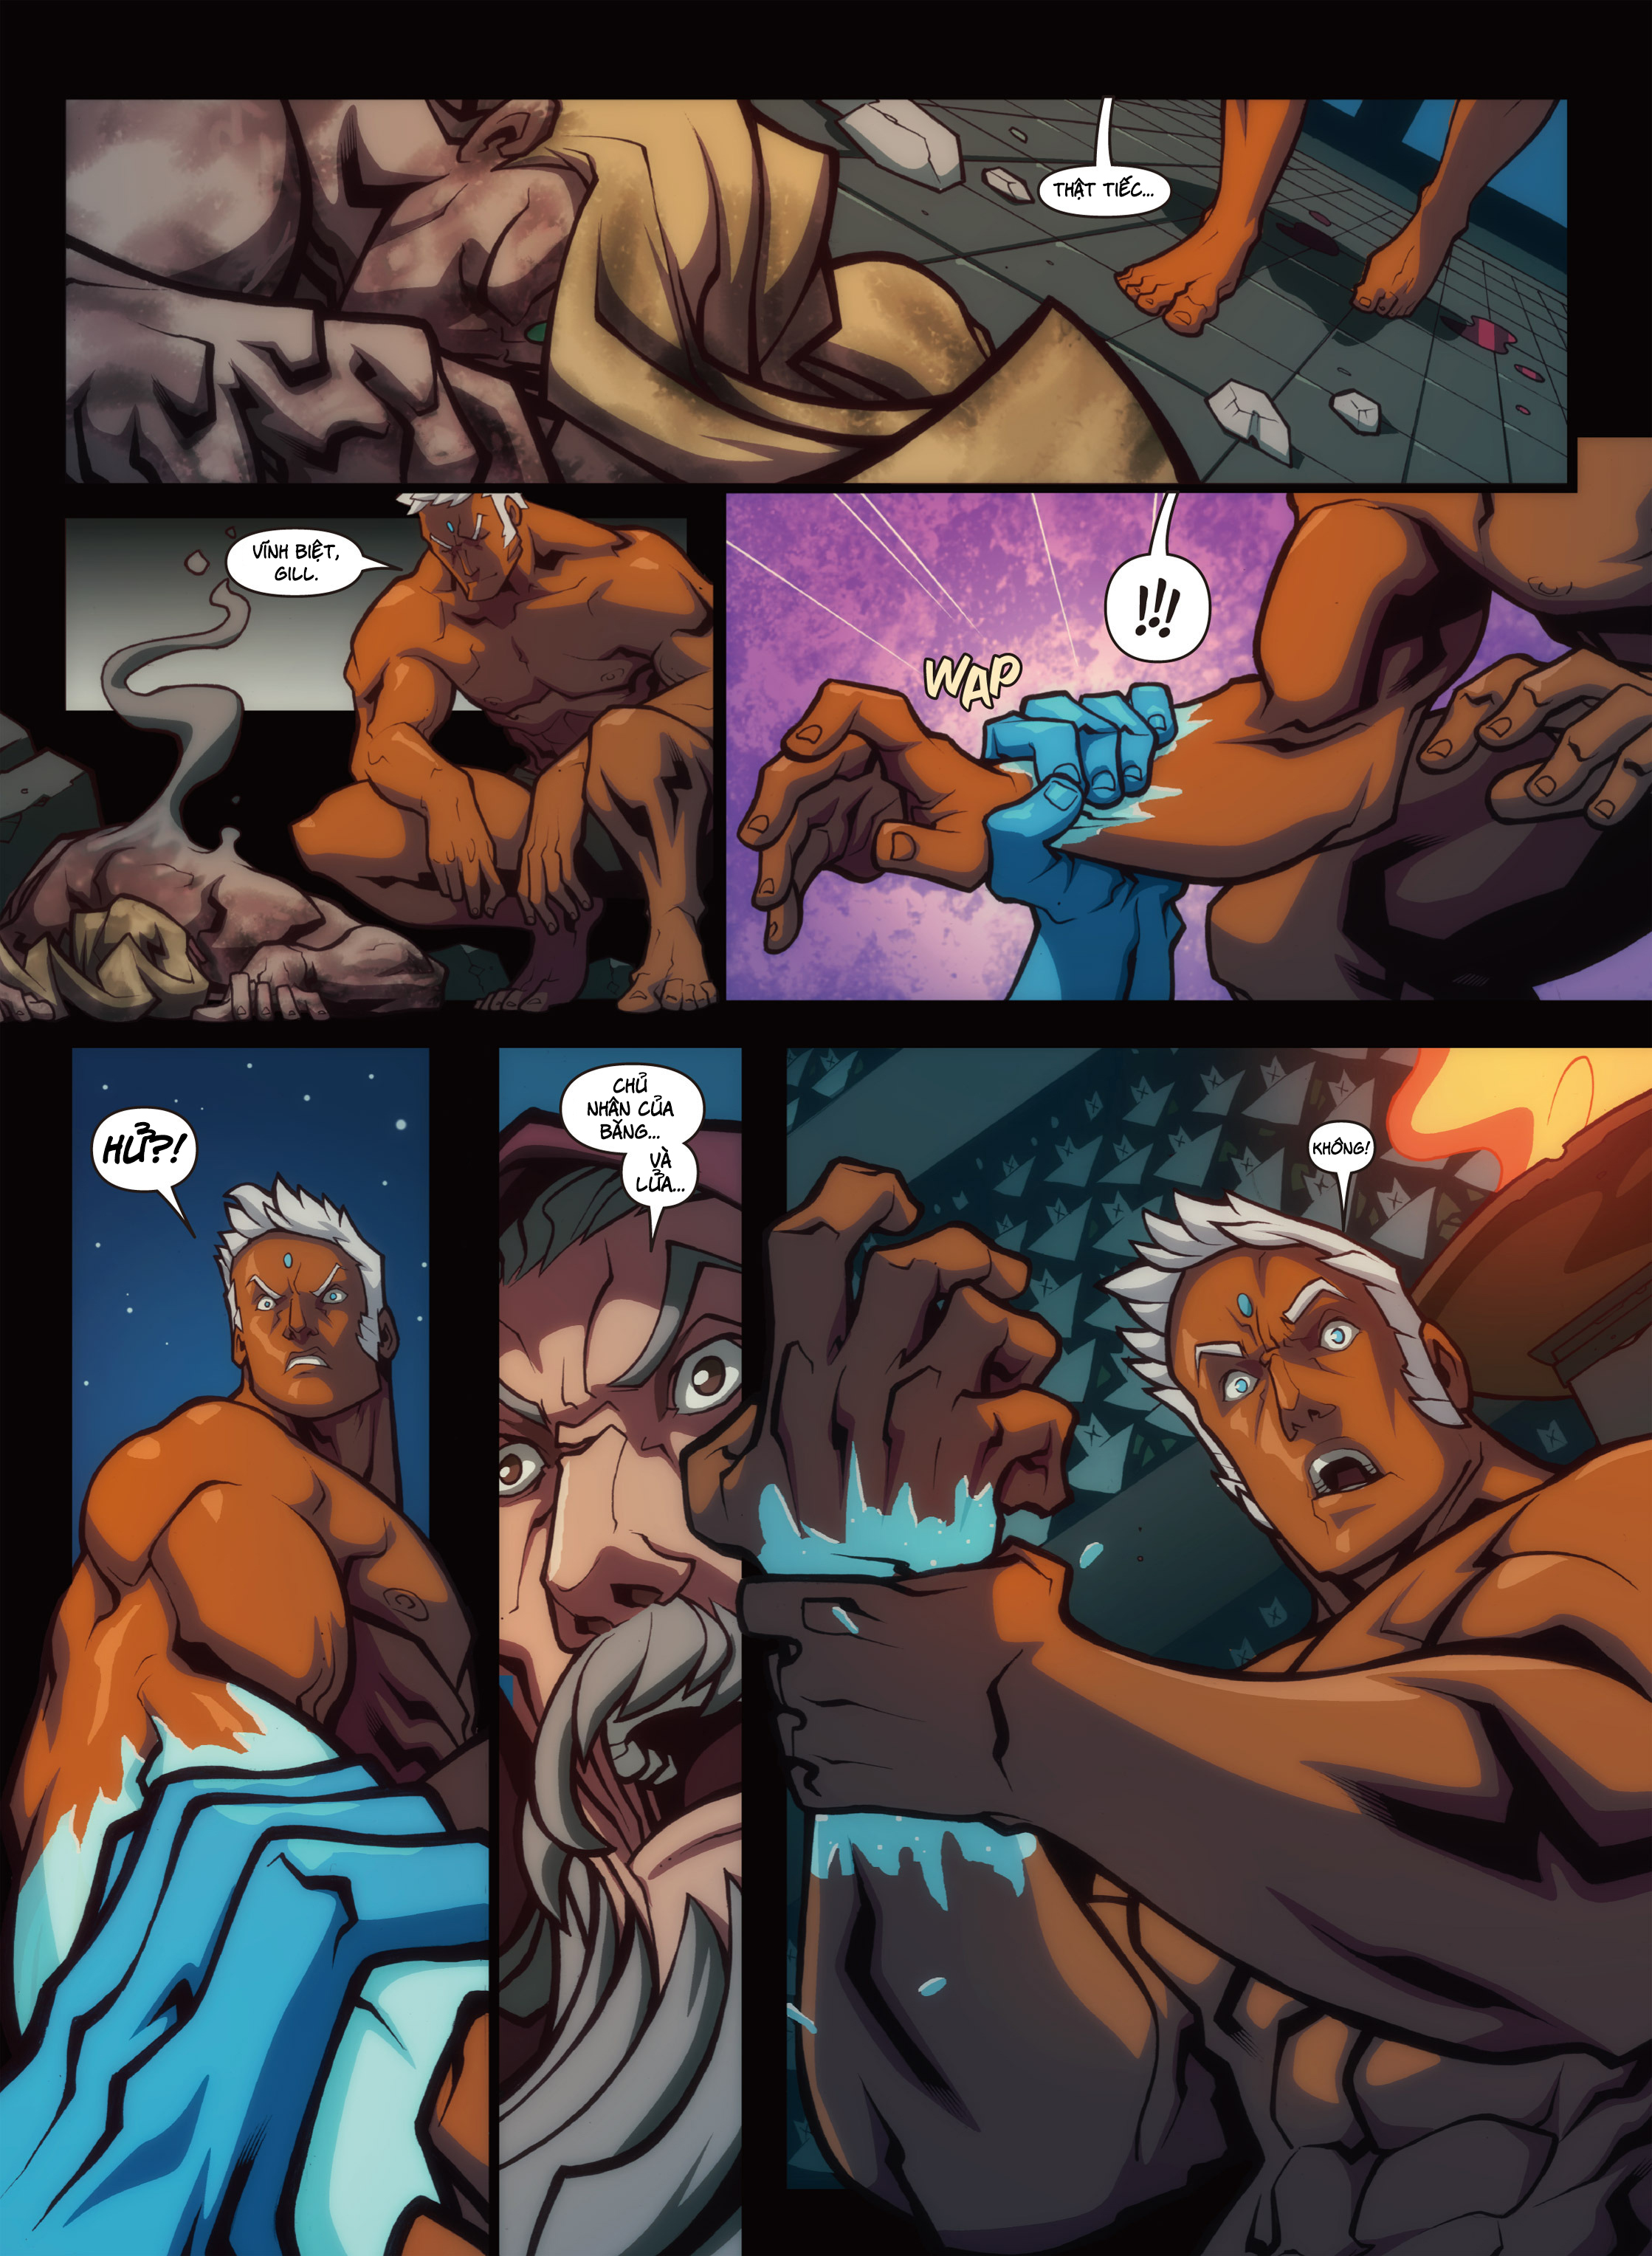 Street Fighter Unlimited Chap 0.1 - Next Chap 1